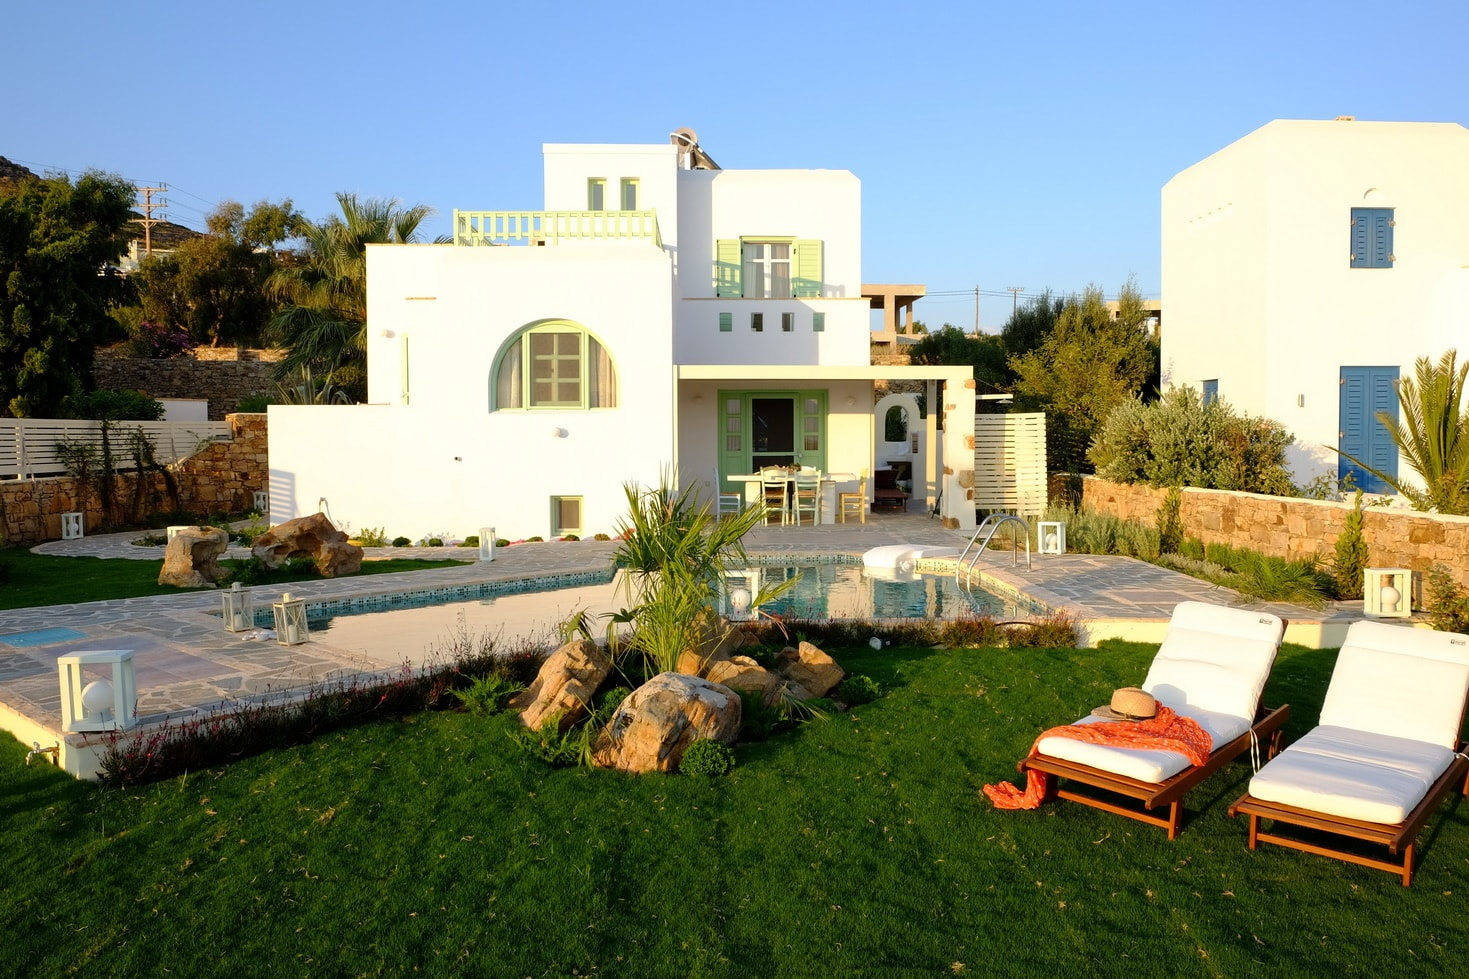 Naxos private 3 bedroom family villa valea kids love greece accommodation for familes